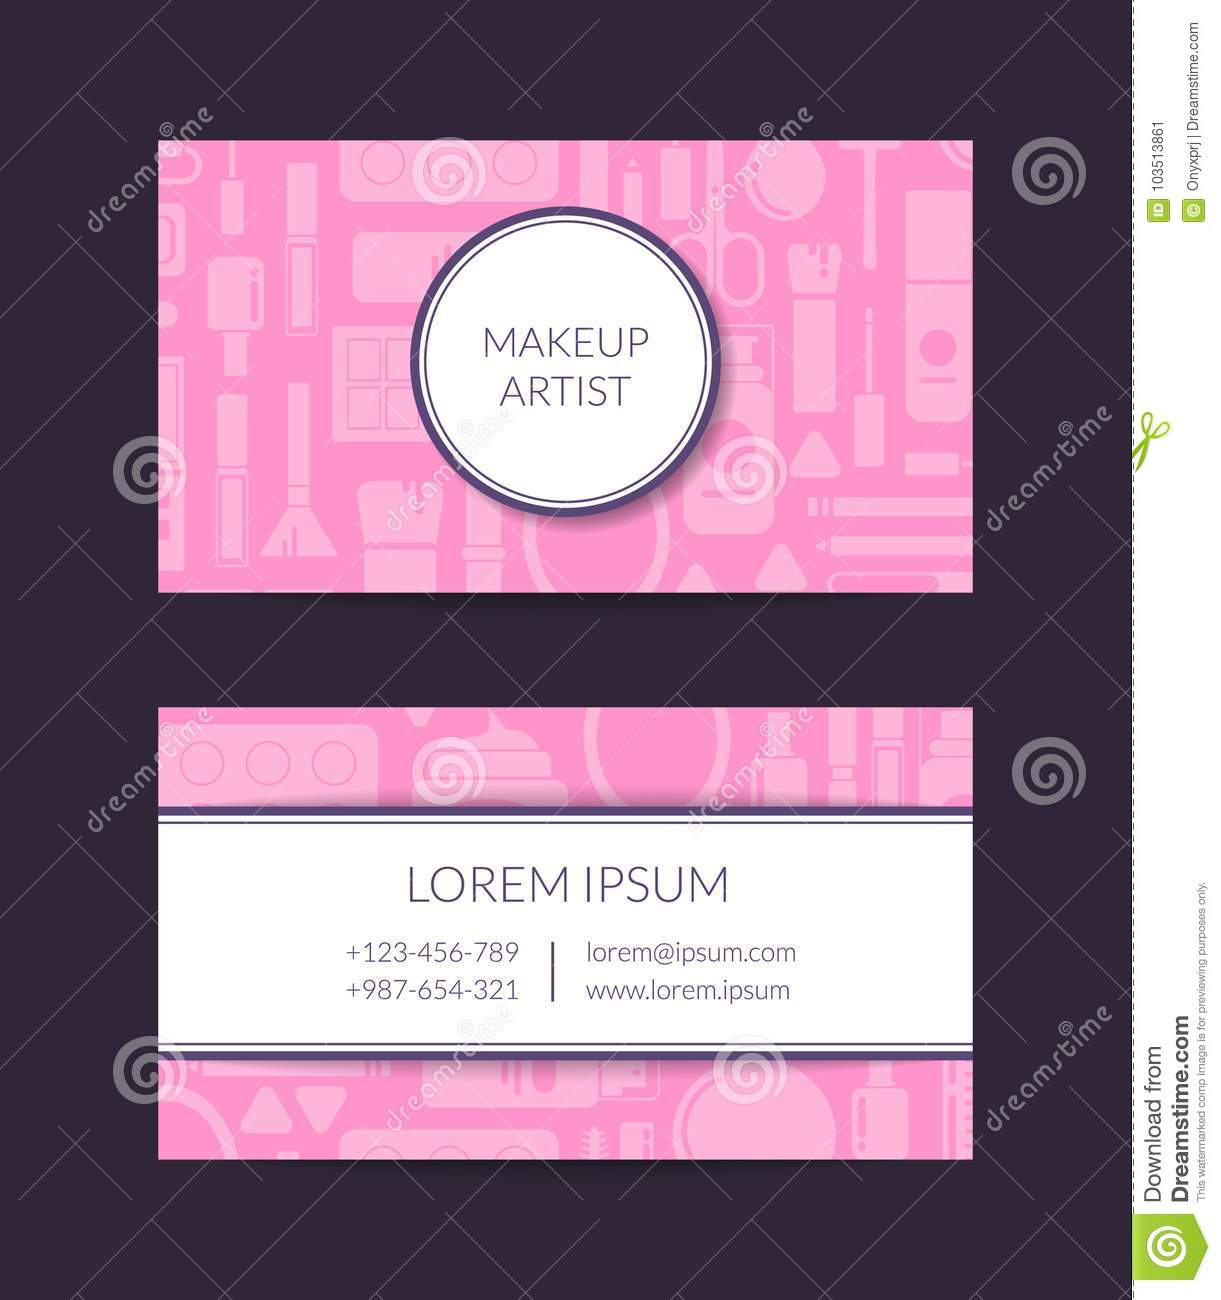 Vector business card template for beauty brand or makeup artist with vector business card template for beauty brand or makeup artist with flat style makeup and skincare with circle rectangle stripes and shadows illustration colourmoves